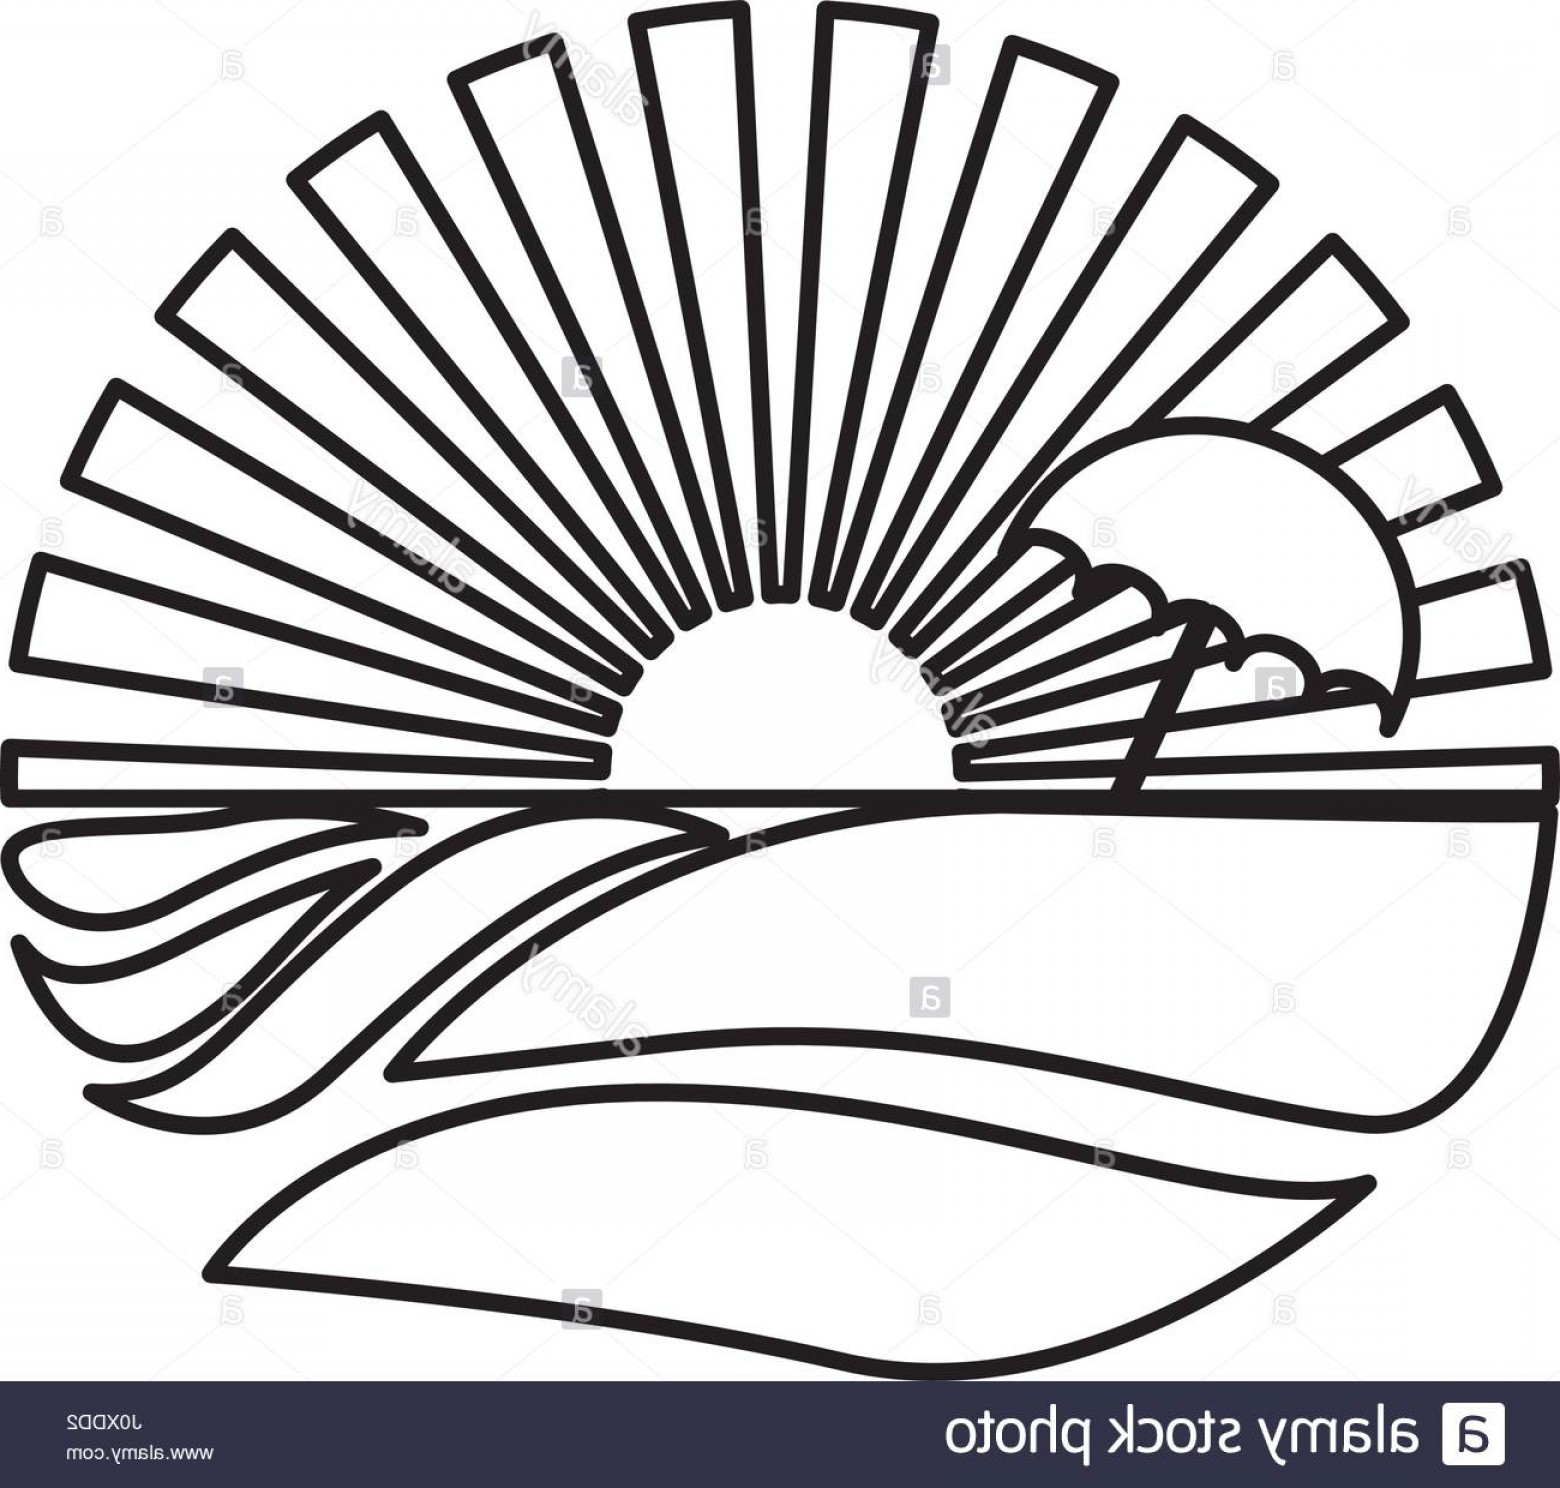 Sunset Beach Vector Outline: Stock Photo Silhouette Circular Background Sunset With Beach And Umbrella